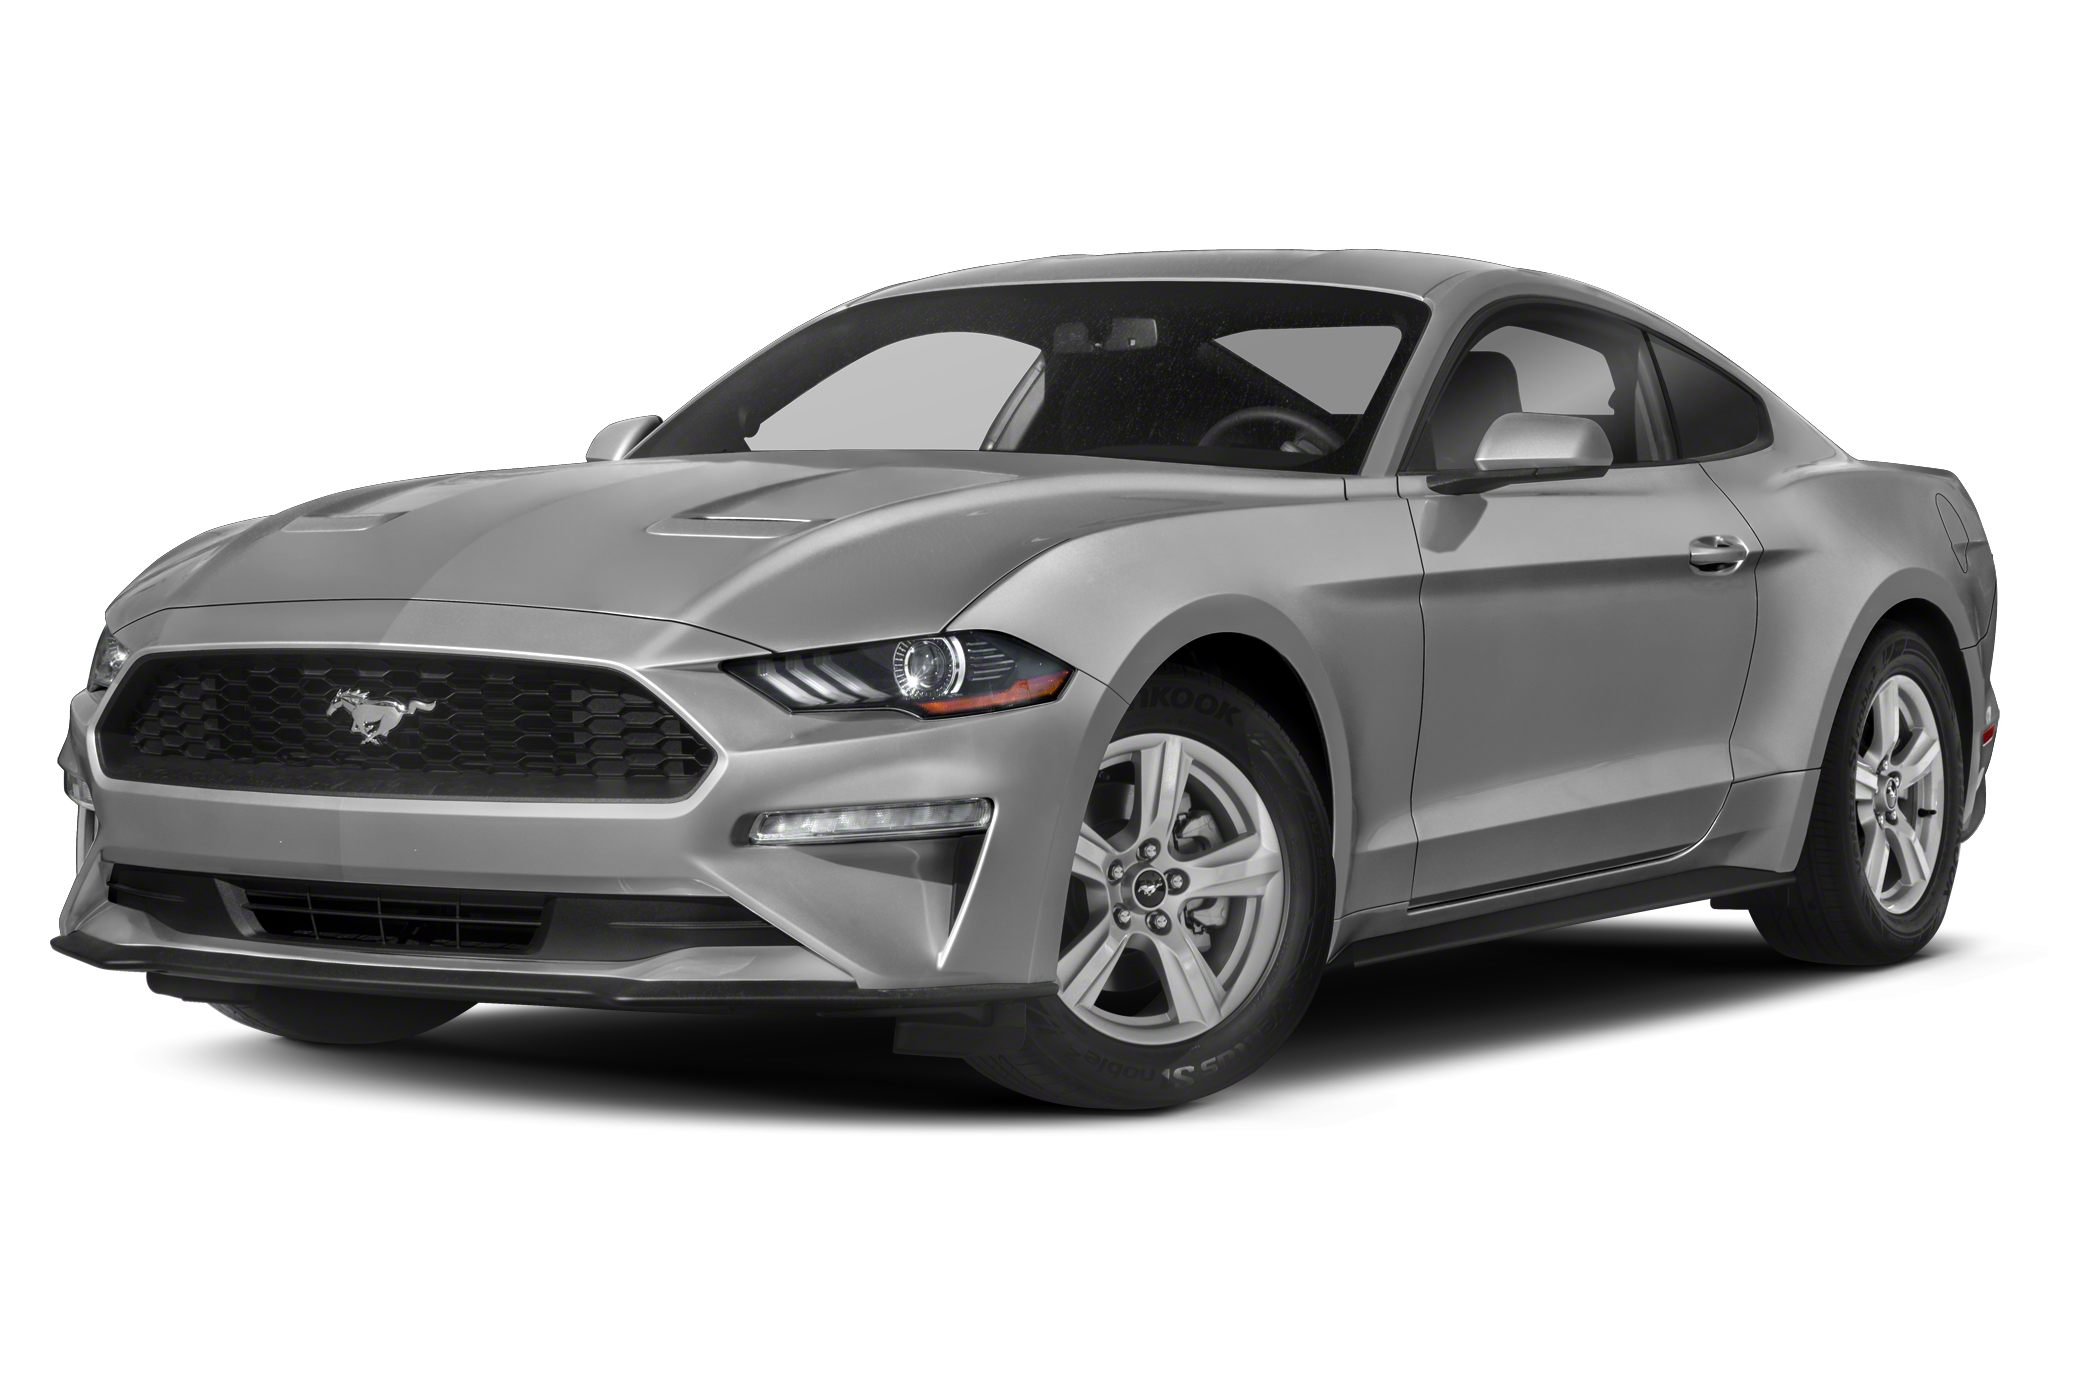 Used Cars Albany Ga Inspirational New and Used ford Mustang In Albany Ga with 6 000 Miles